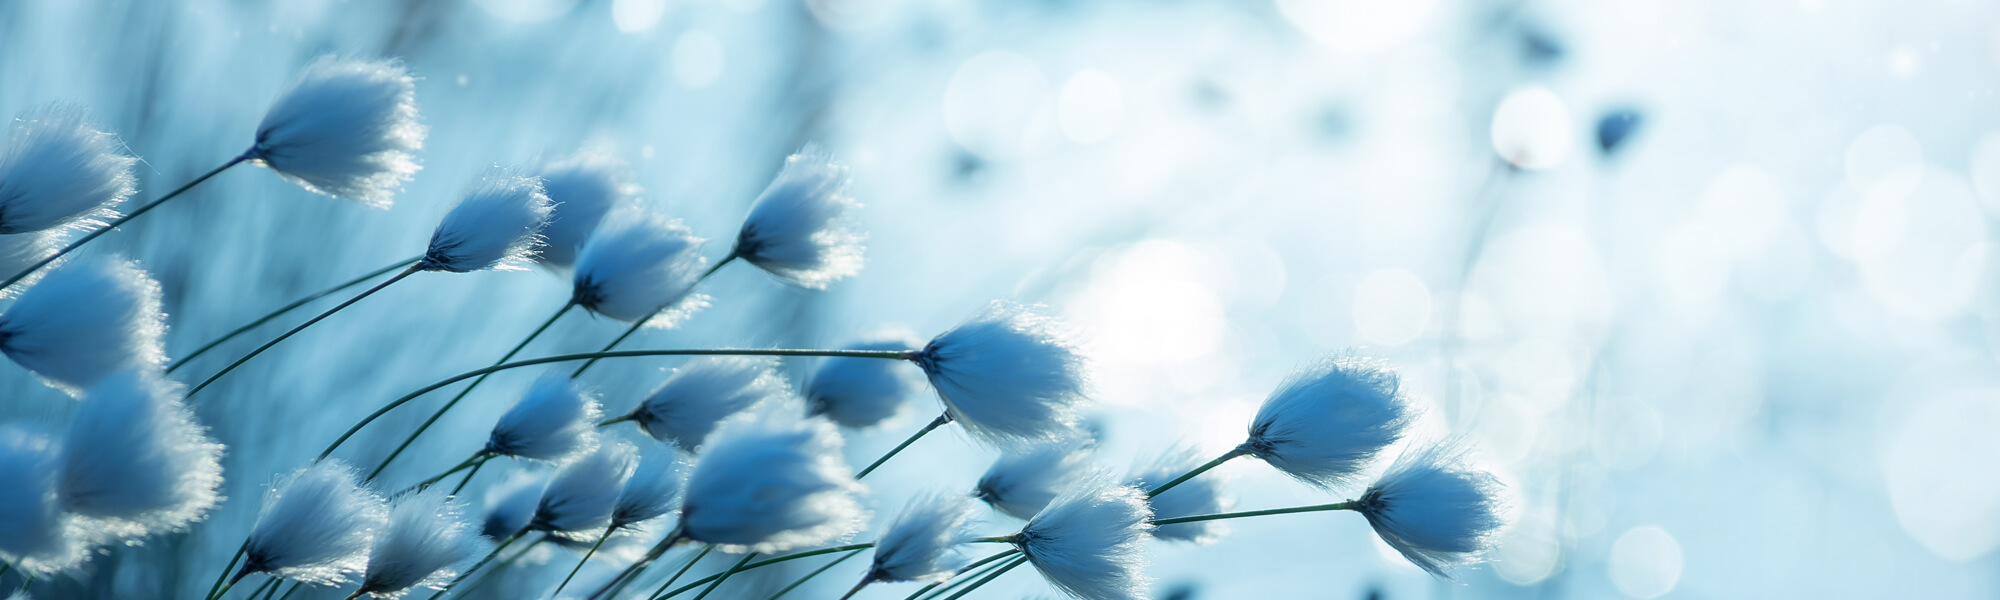 background-coton-bleu